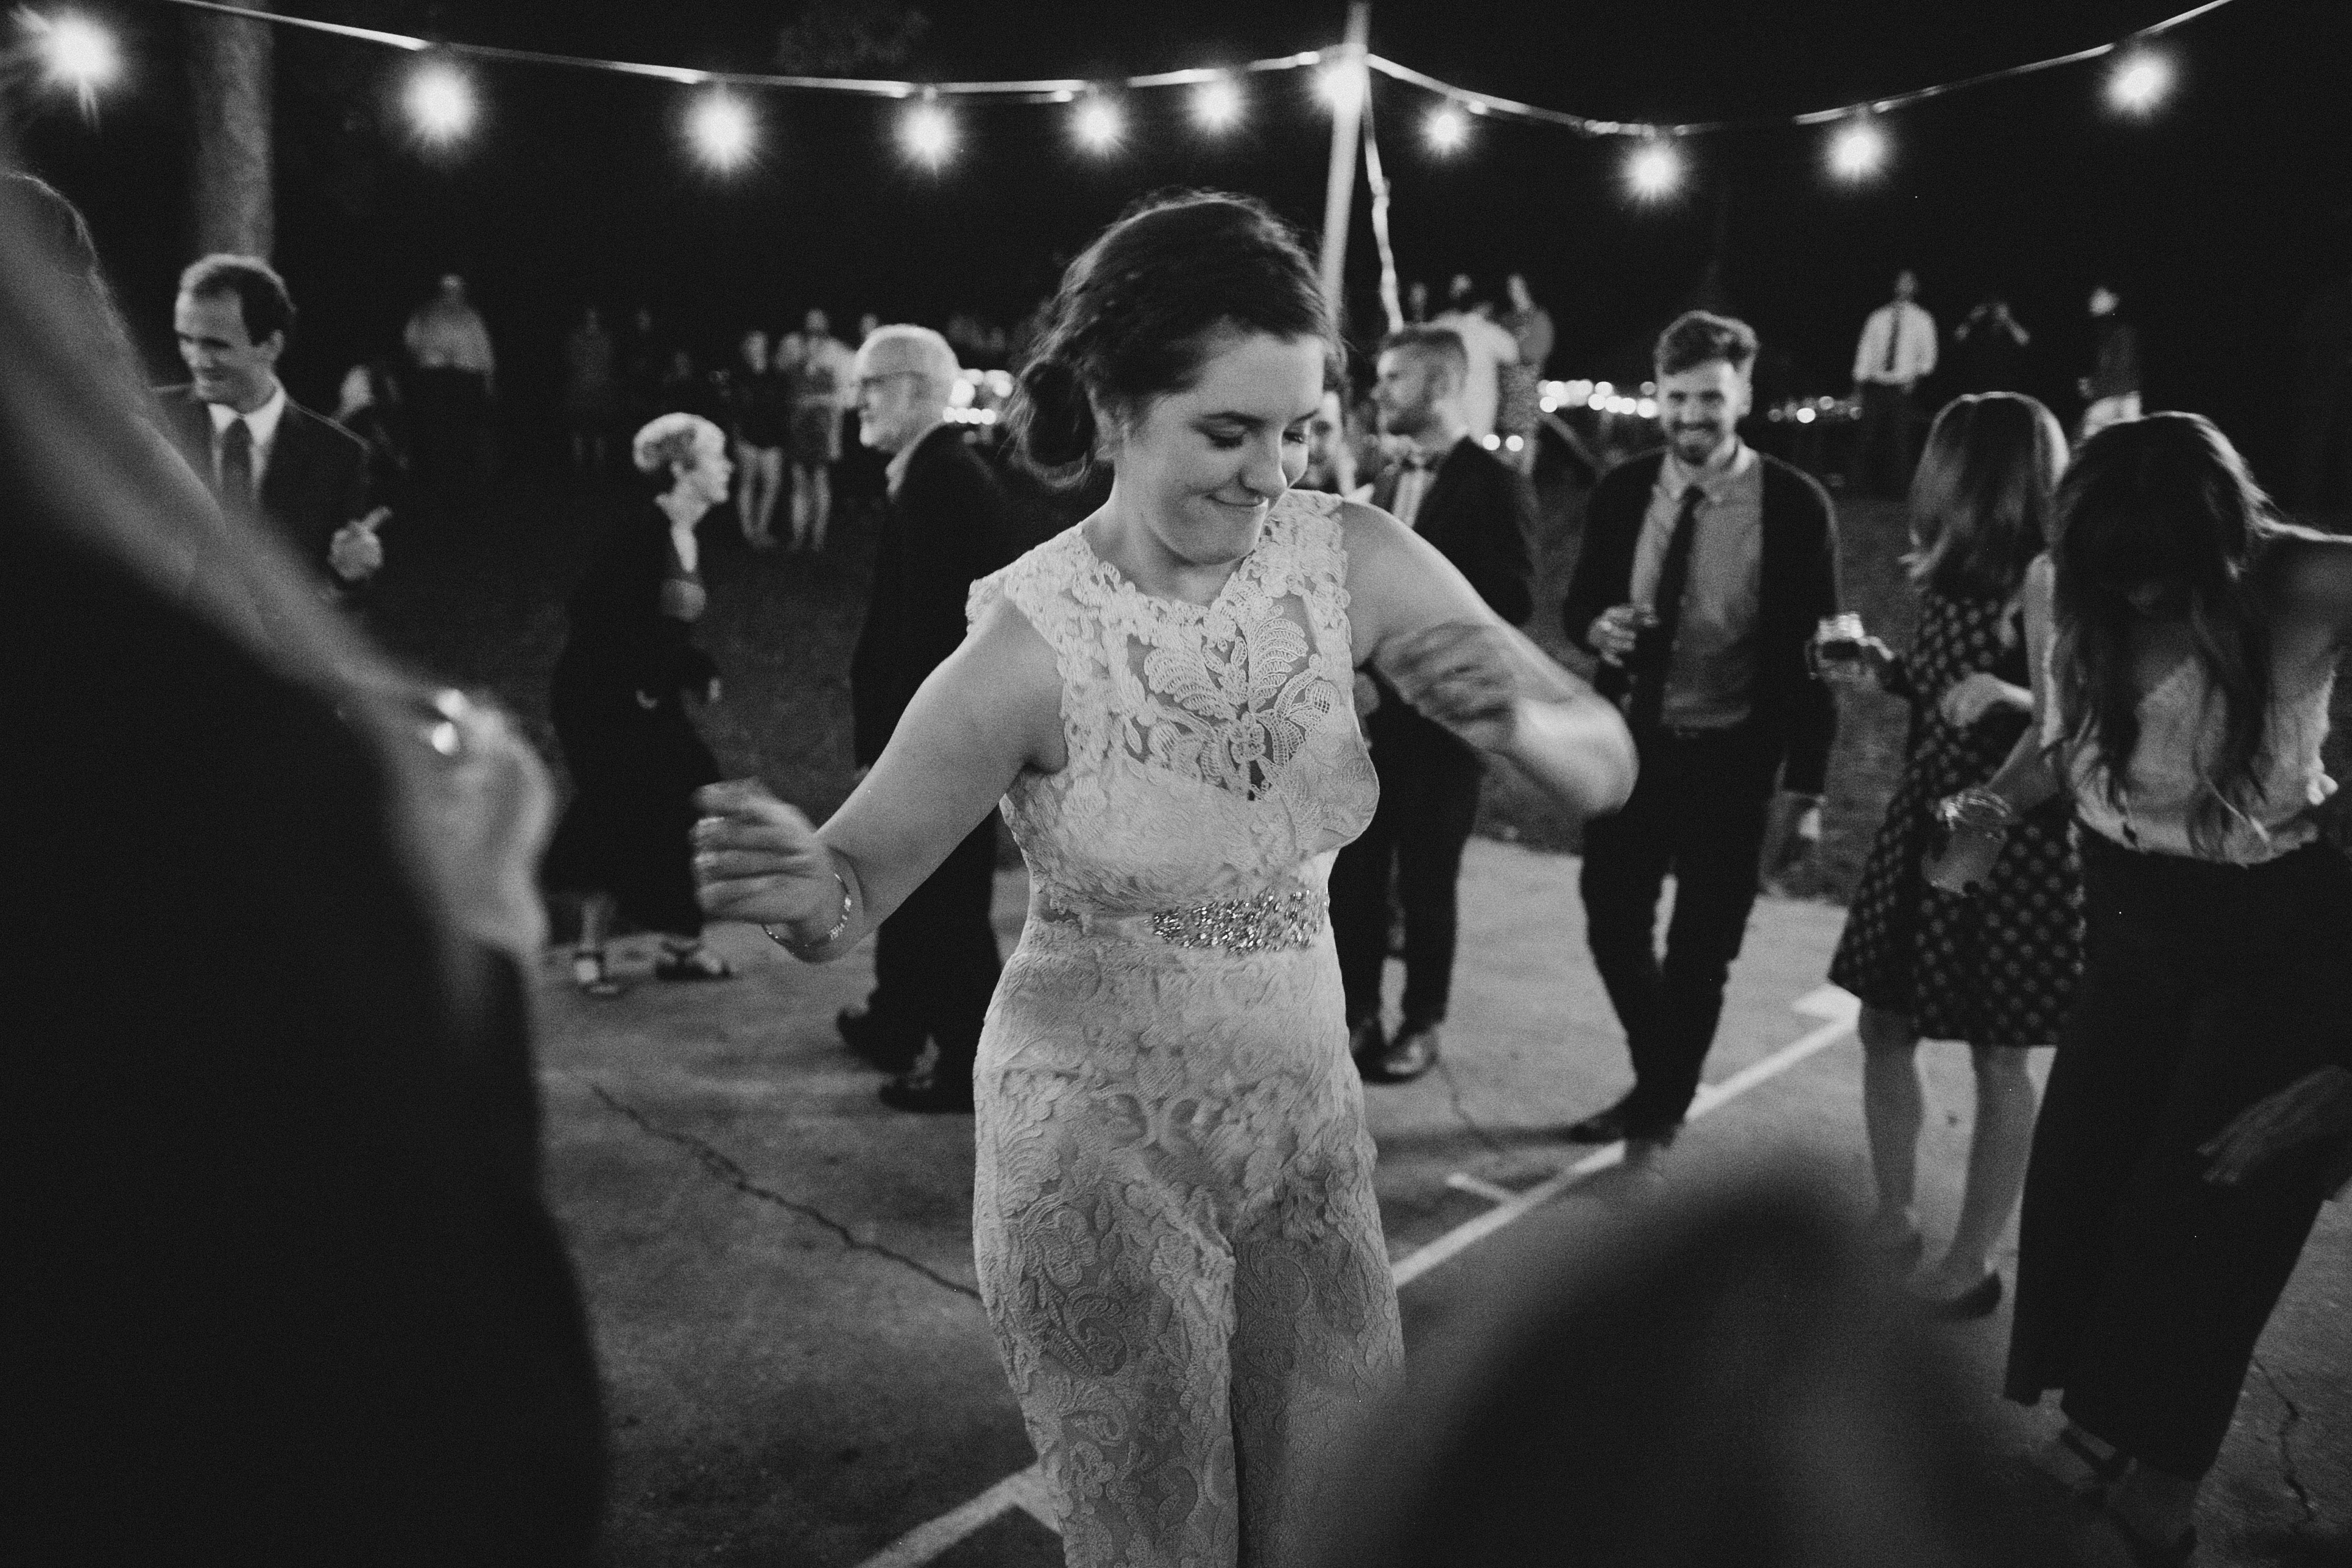 Bride in a Jumpsuit Dancing at Her Wedding